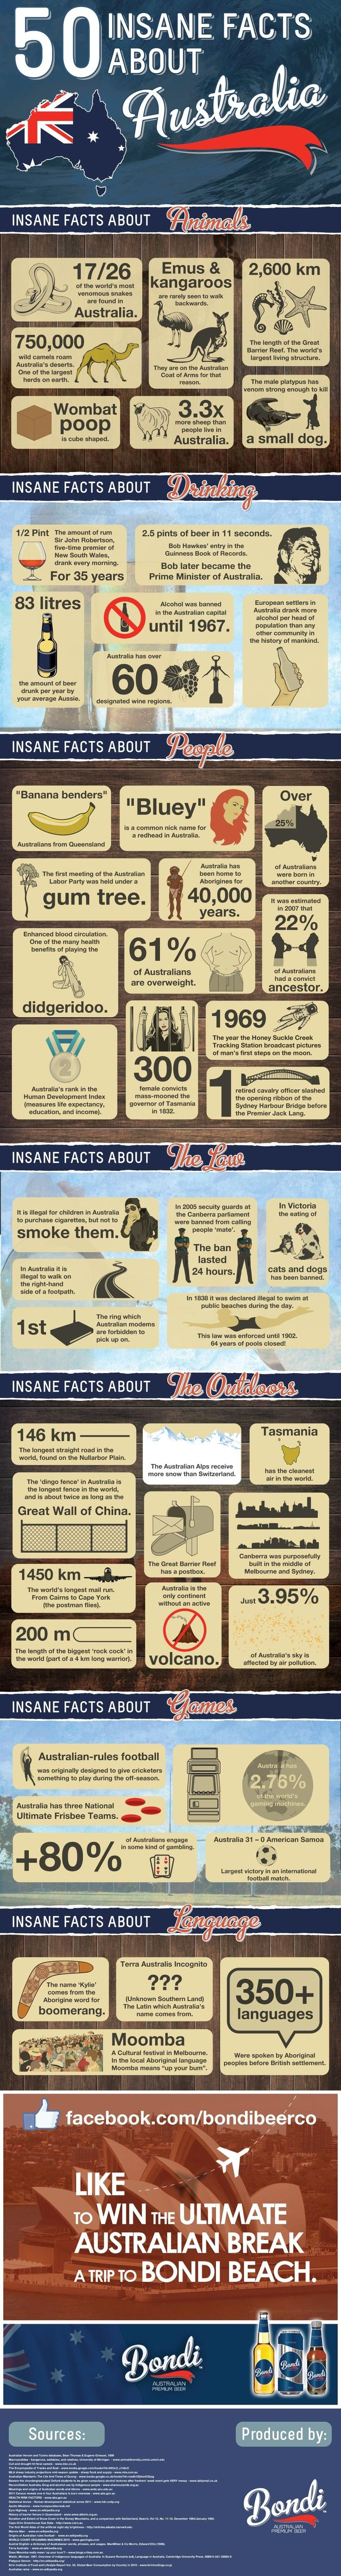 50 insane facts about Australia